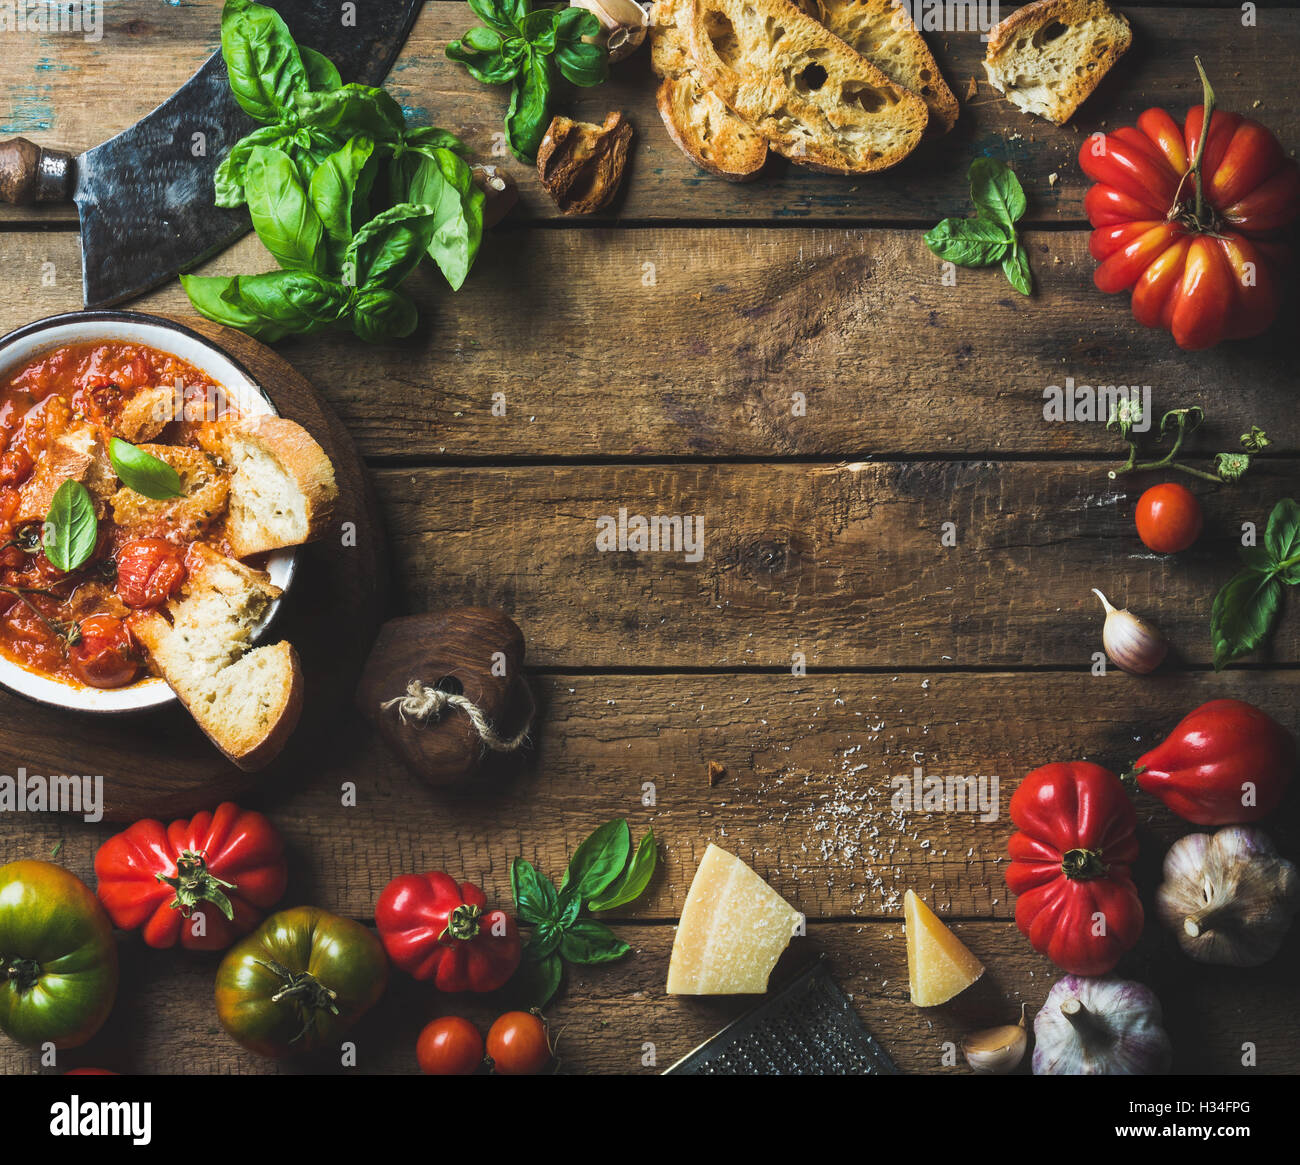 Italian roasted tomato and garlic soup with bread, basil, parmesan - Stock Image